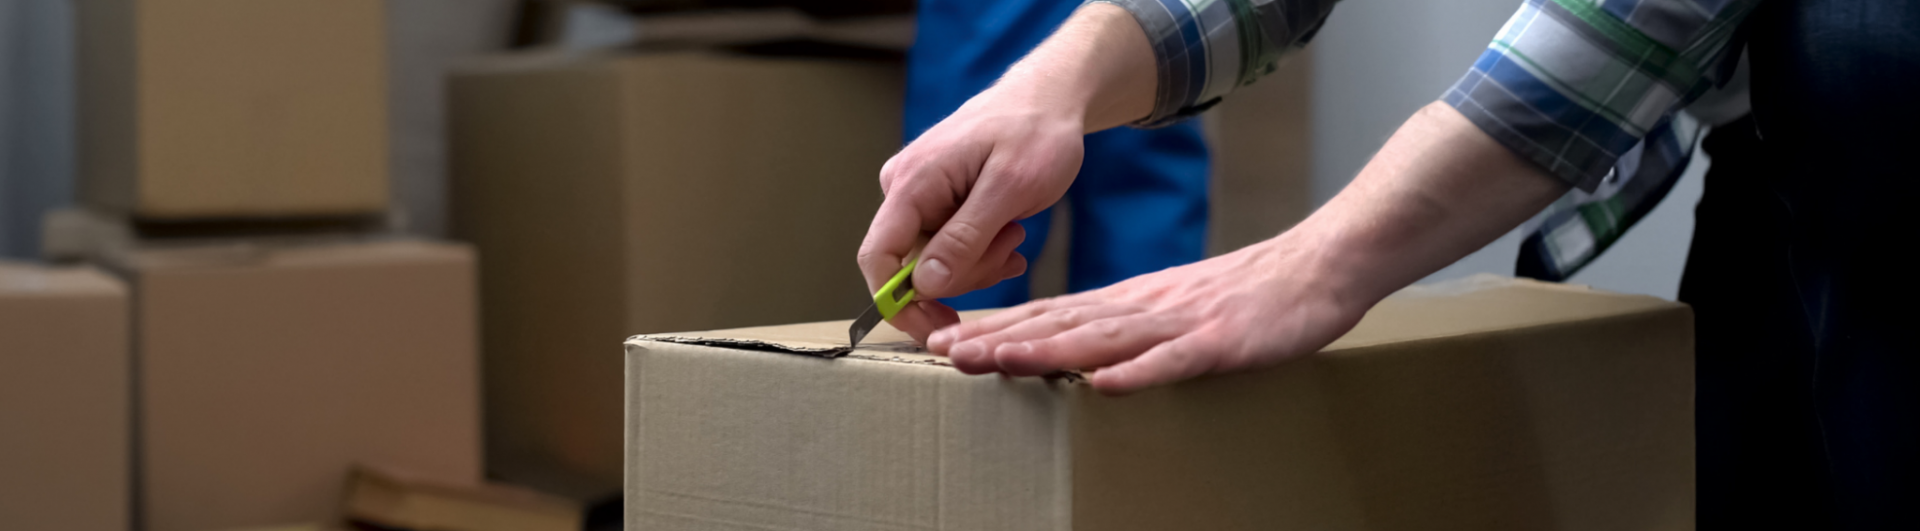 a packer from an international moving company uses a penknife to open a box